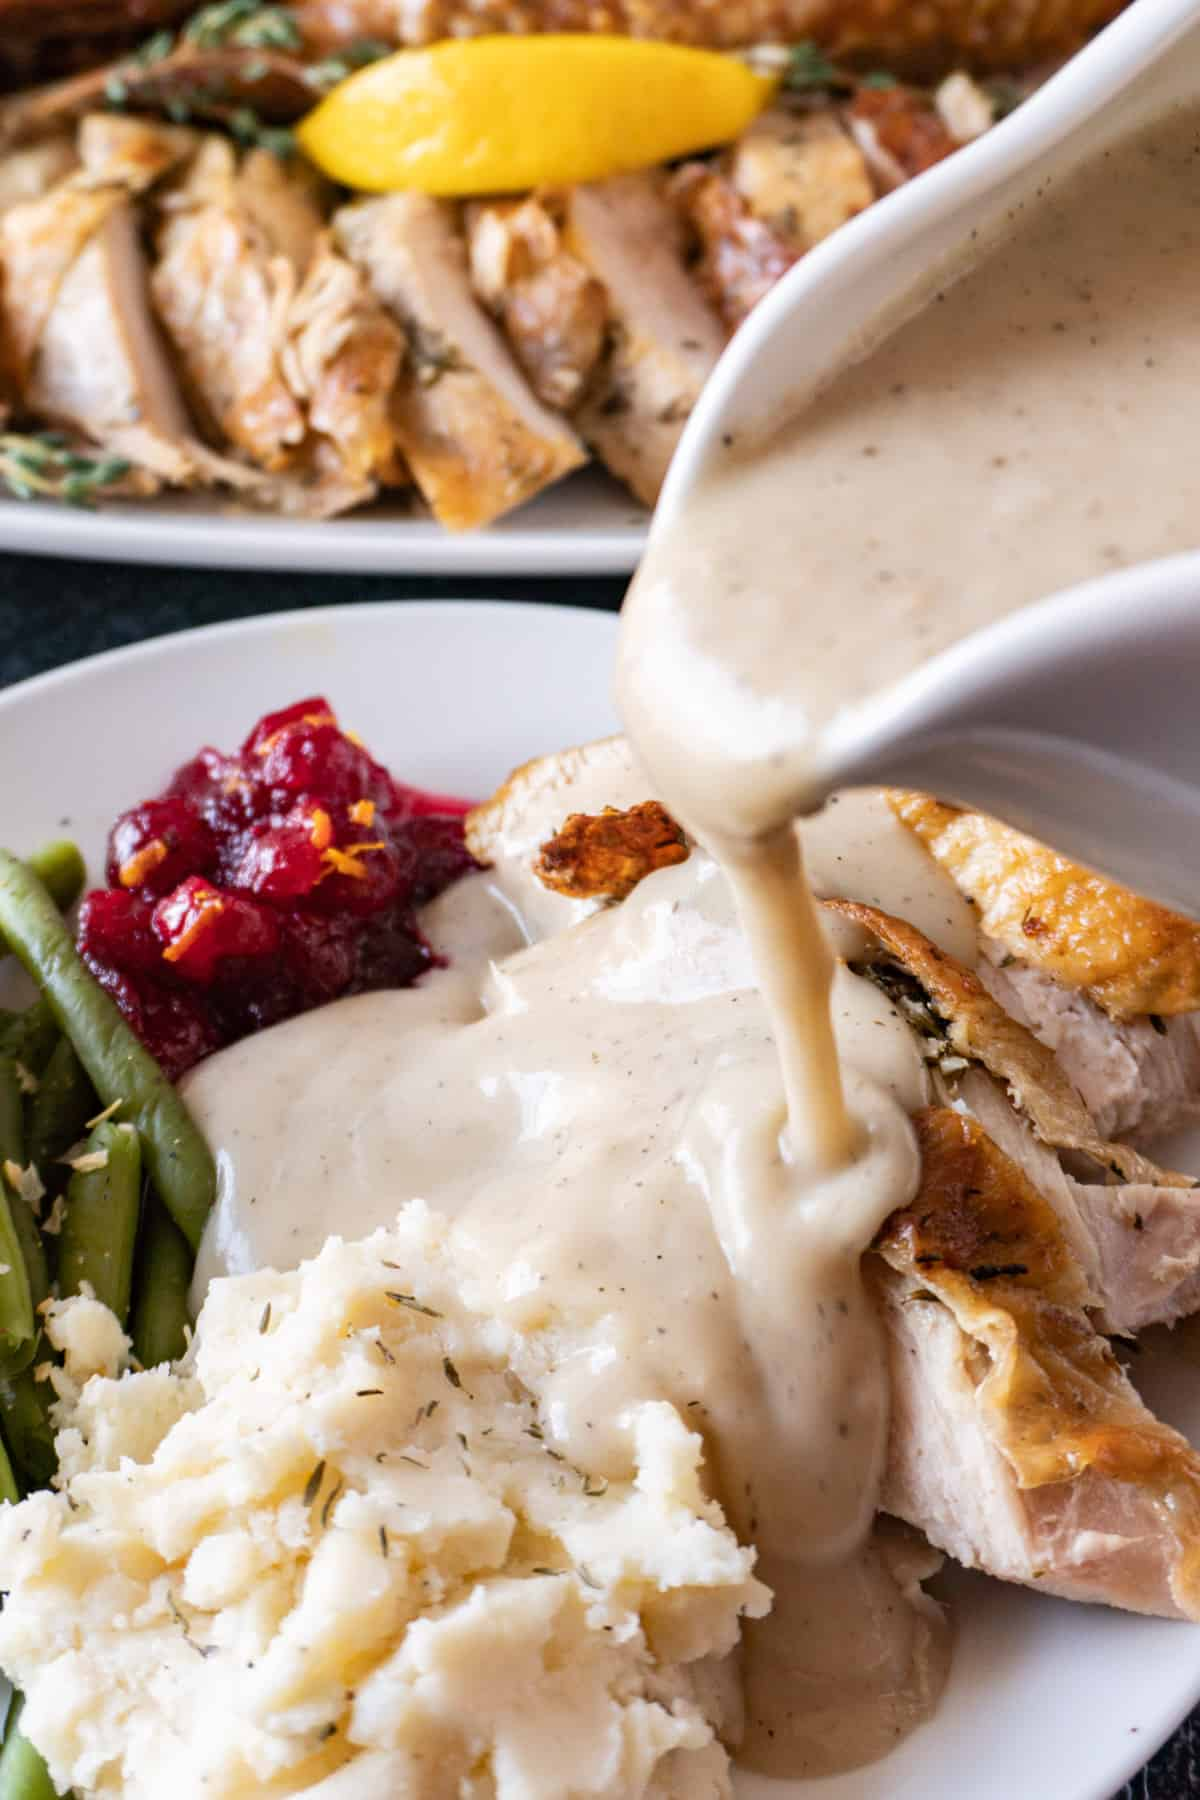 pouring gravy over plate of food including mashed potatoes